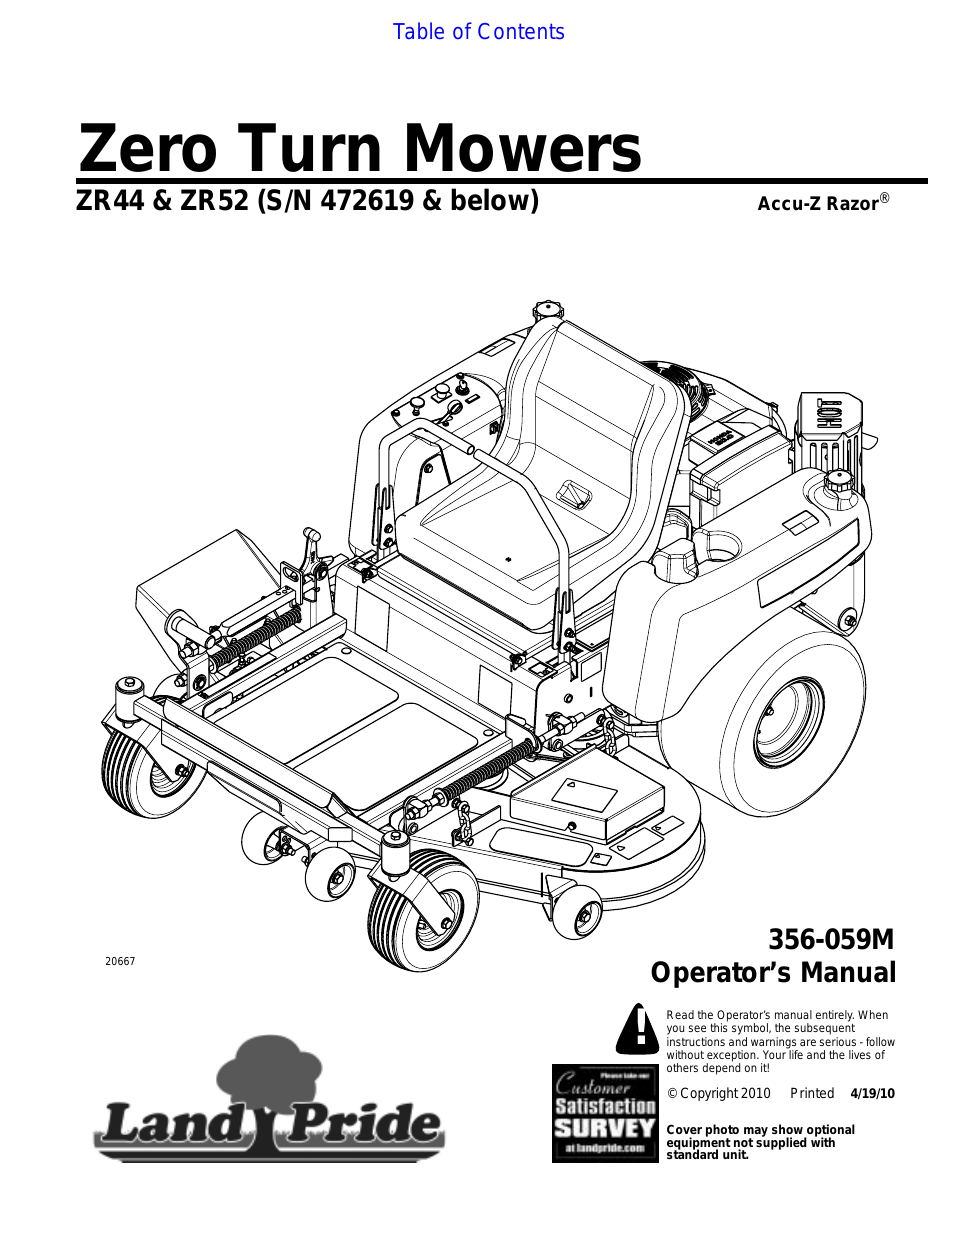 Zero Turn Mower Drawing At Free For Personal Use Ferris Seat Switch Wiring Diagram 954x1235 Land Pride Zr52 User Manual 40 Pages Also Zr44